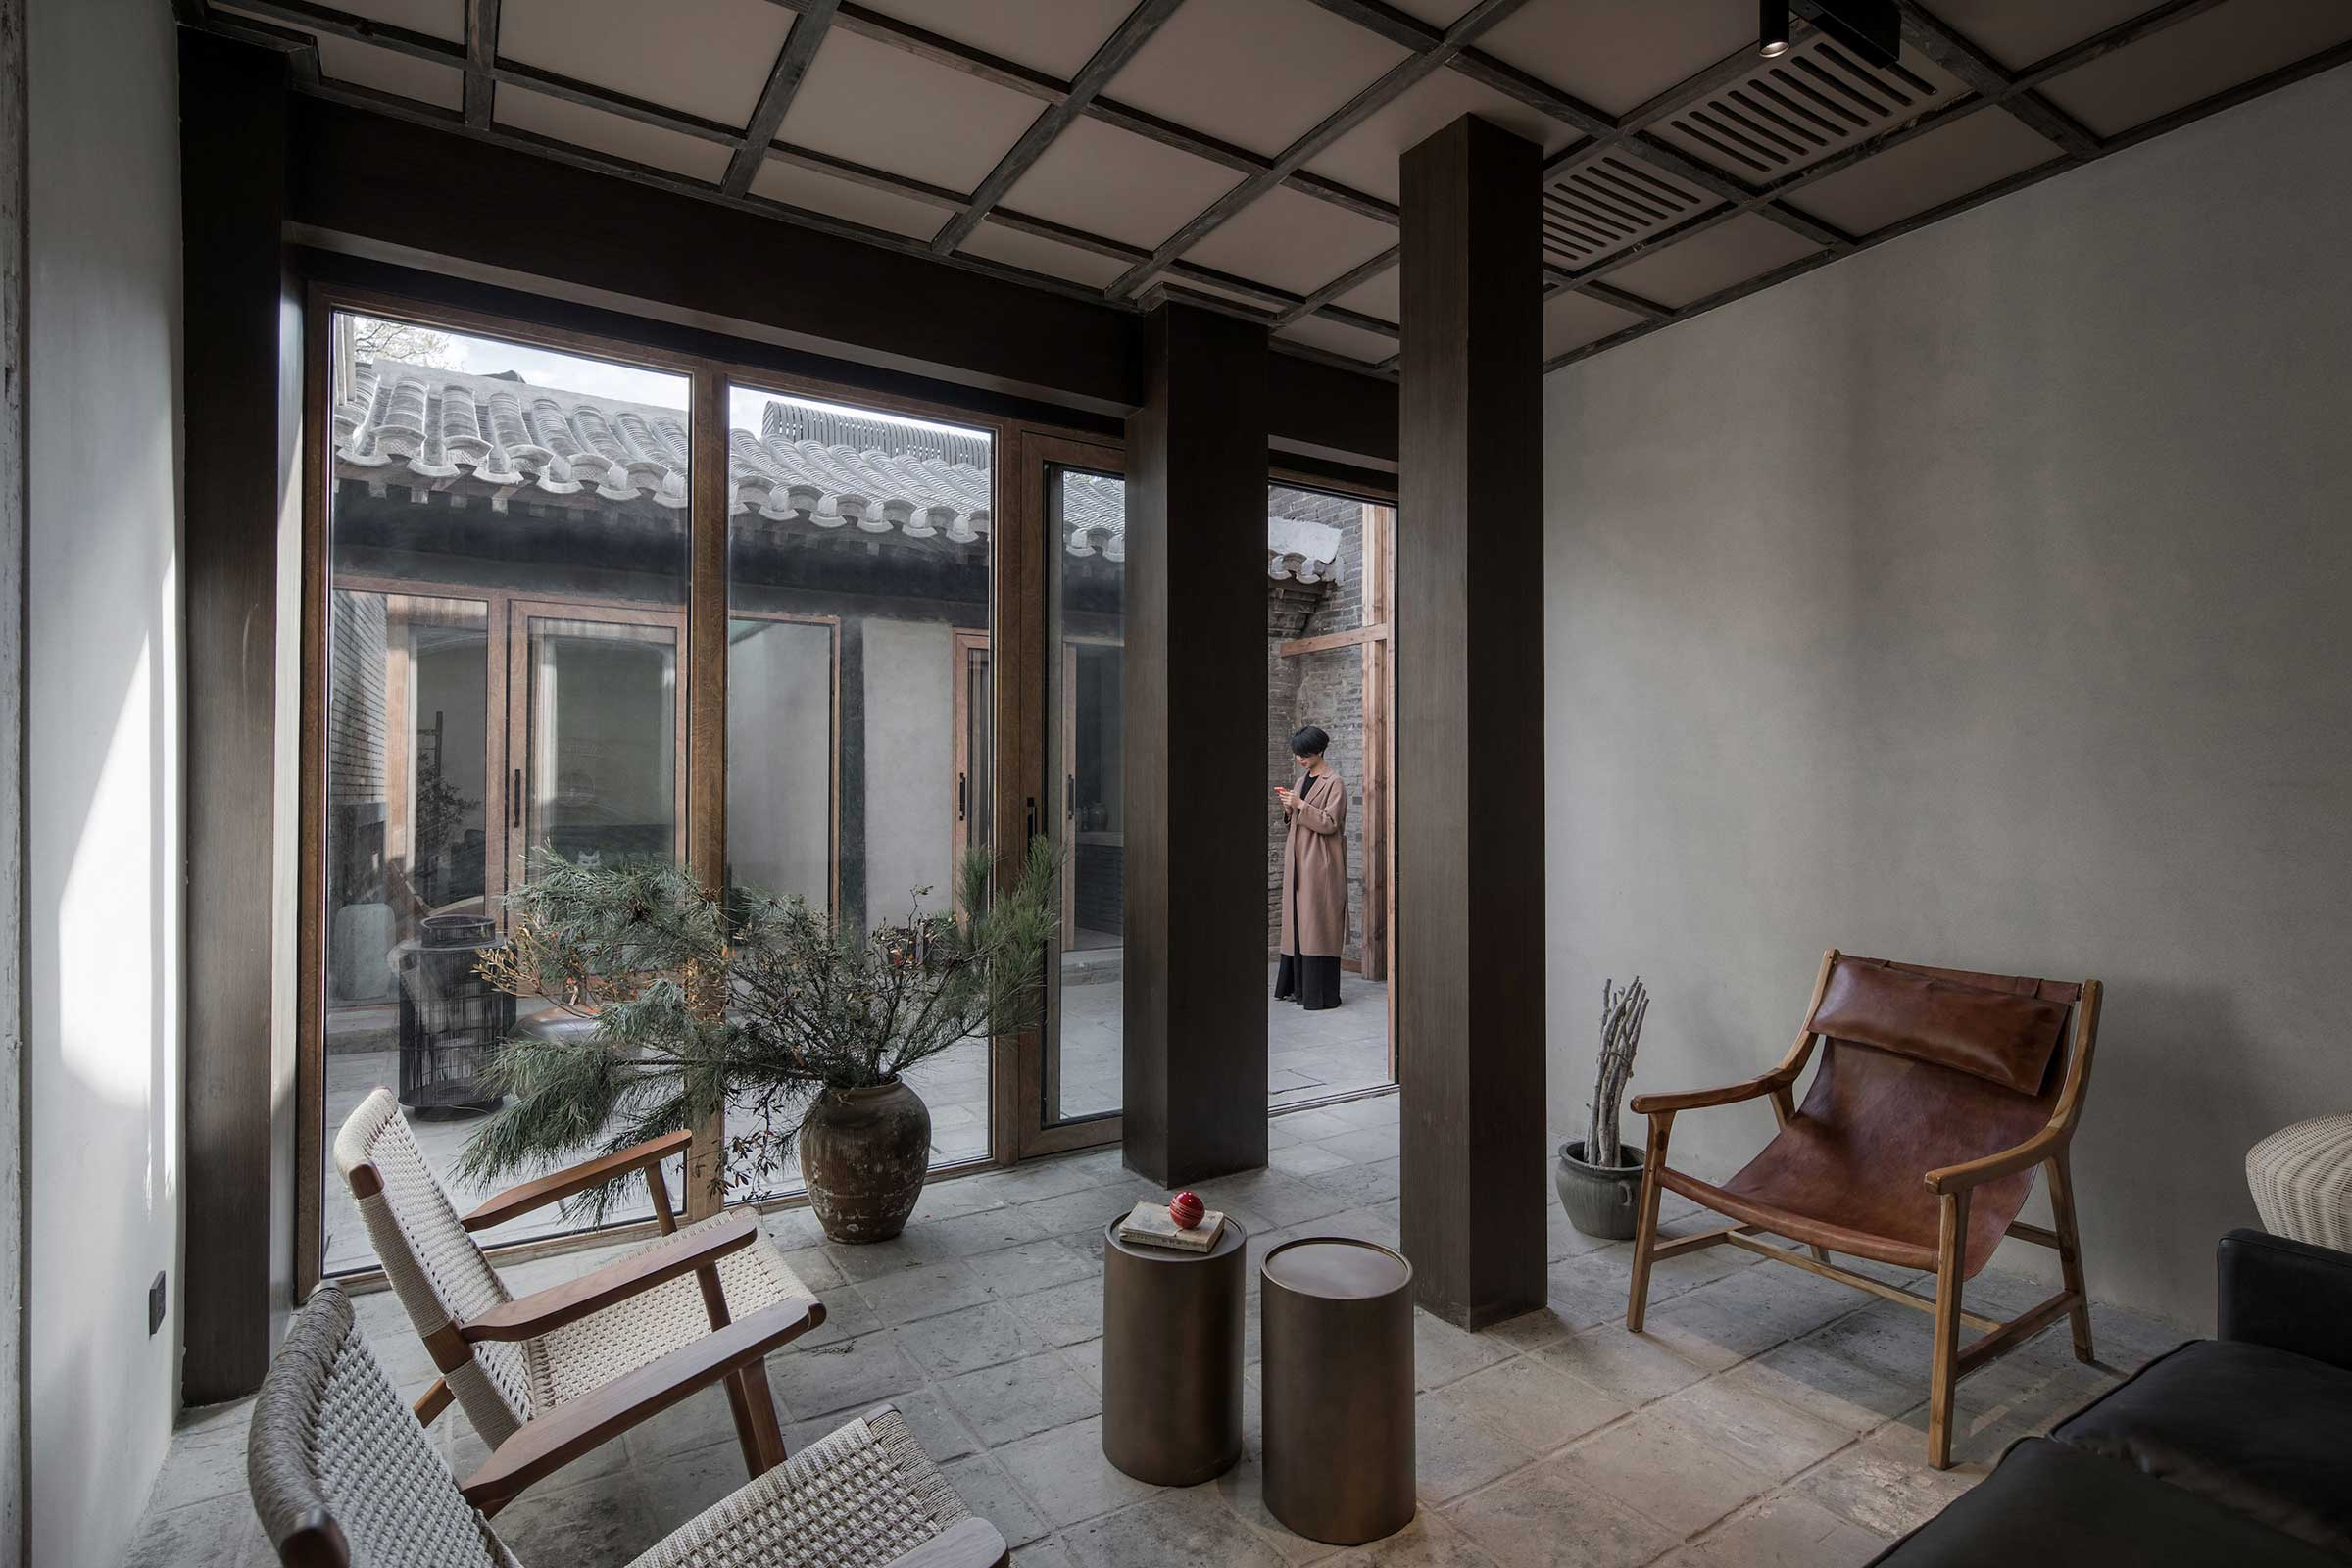 quad-house-ARCHISTRY-nolan-chao-23--first-floor-private-room.jpg